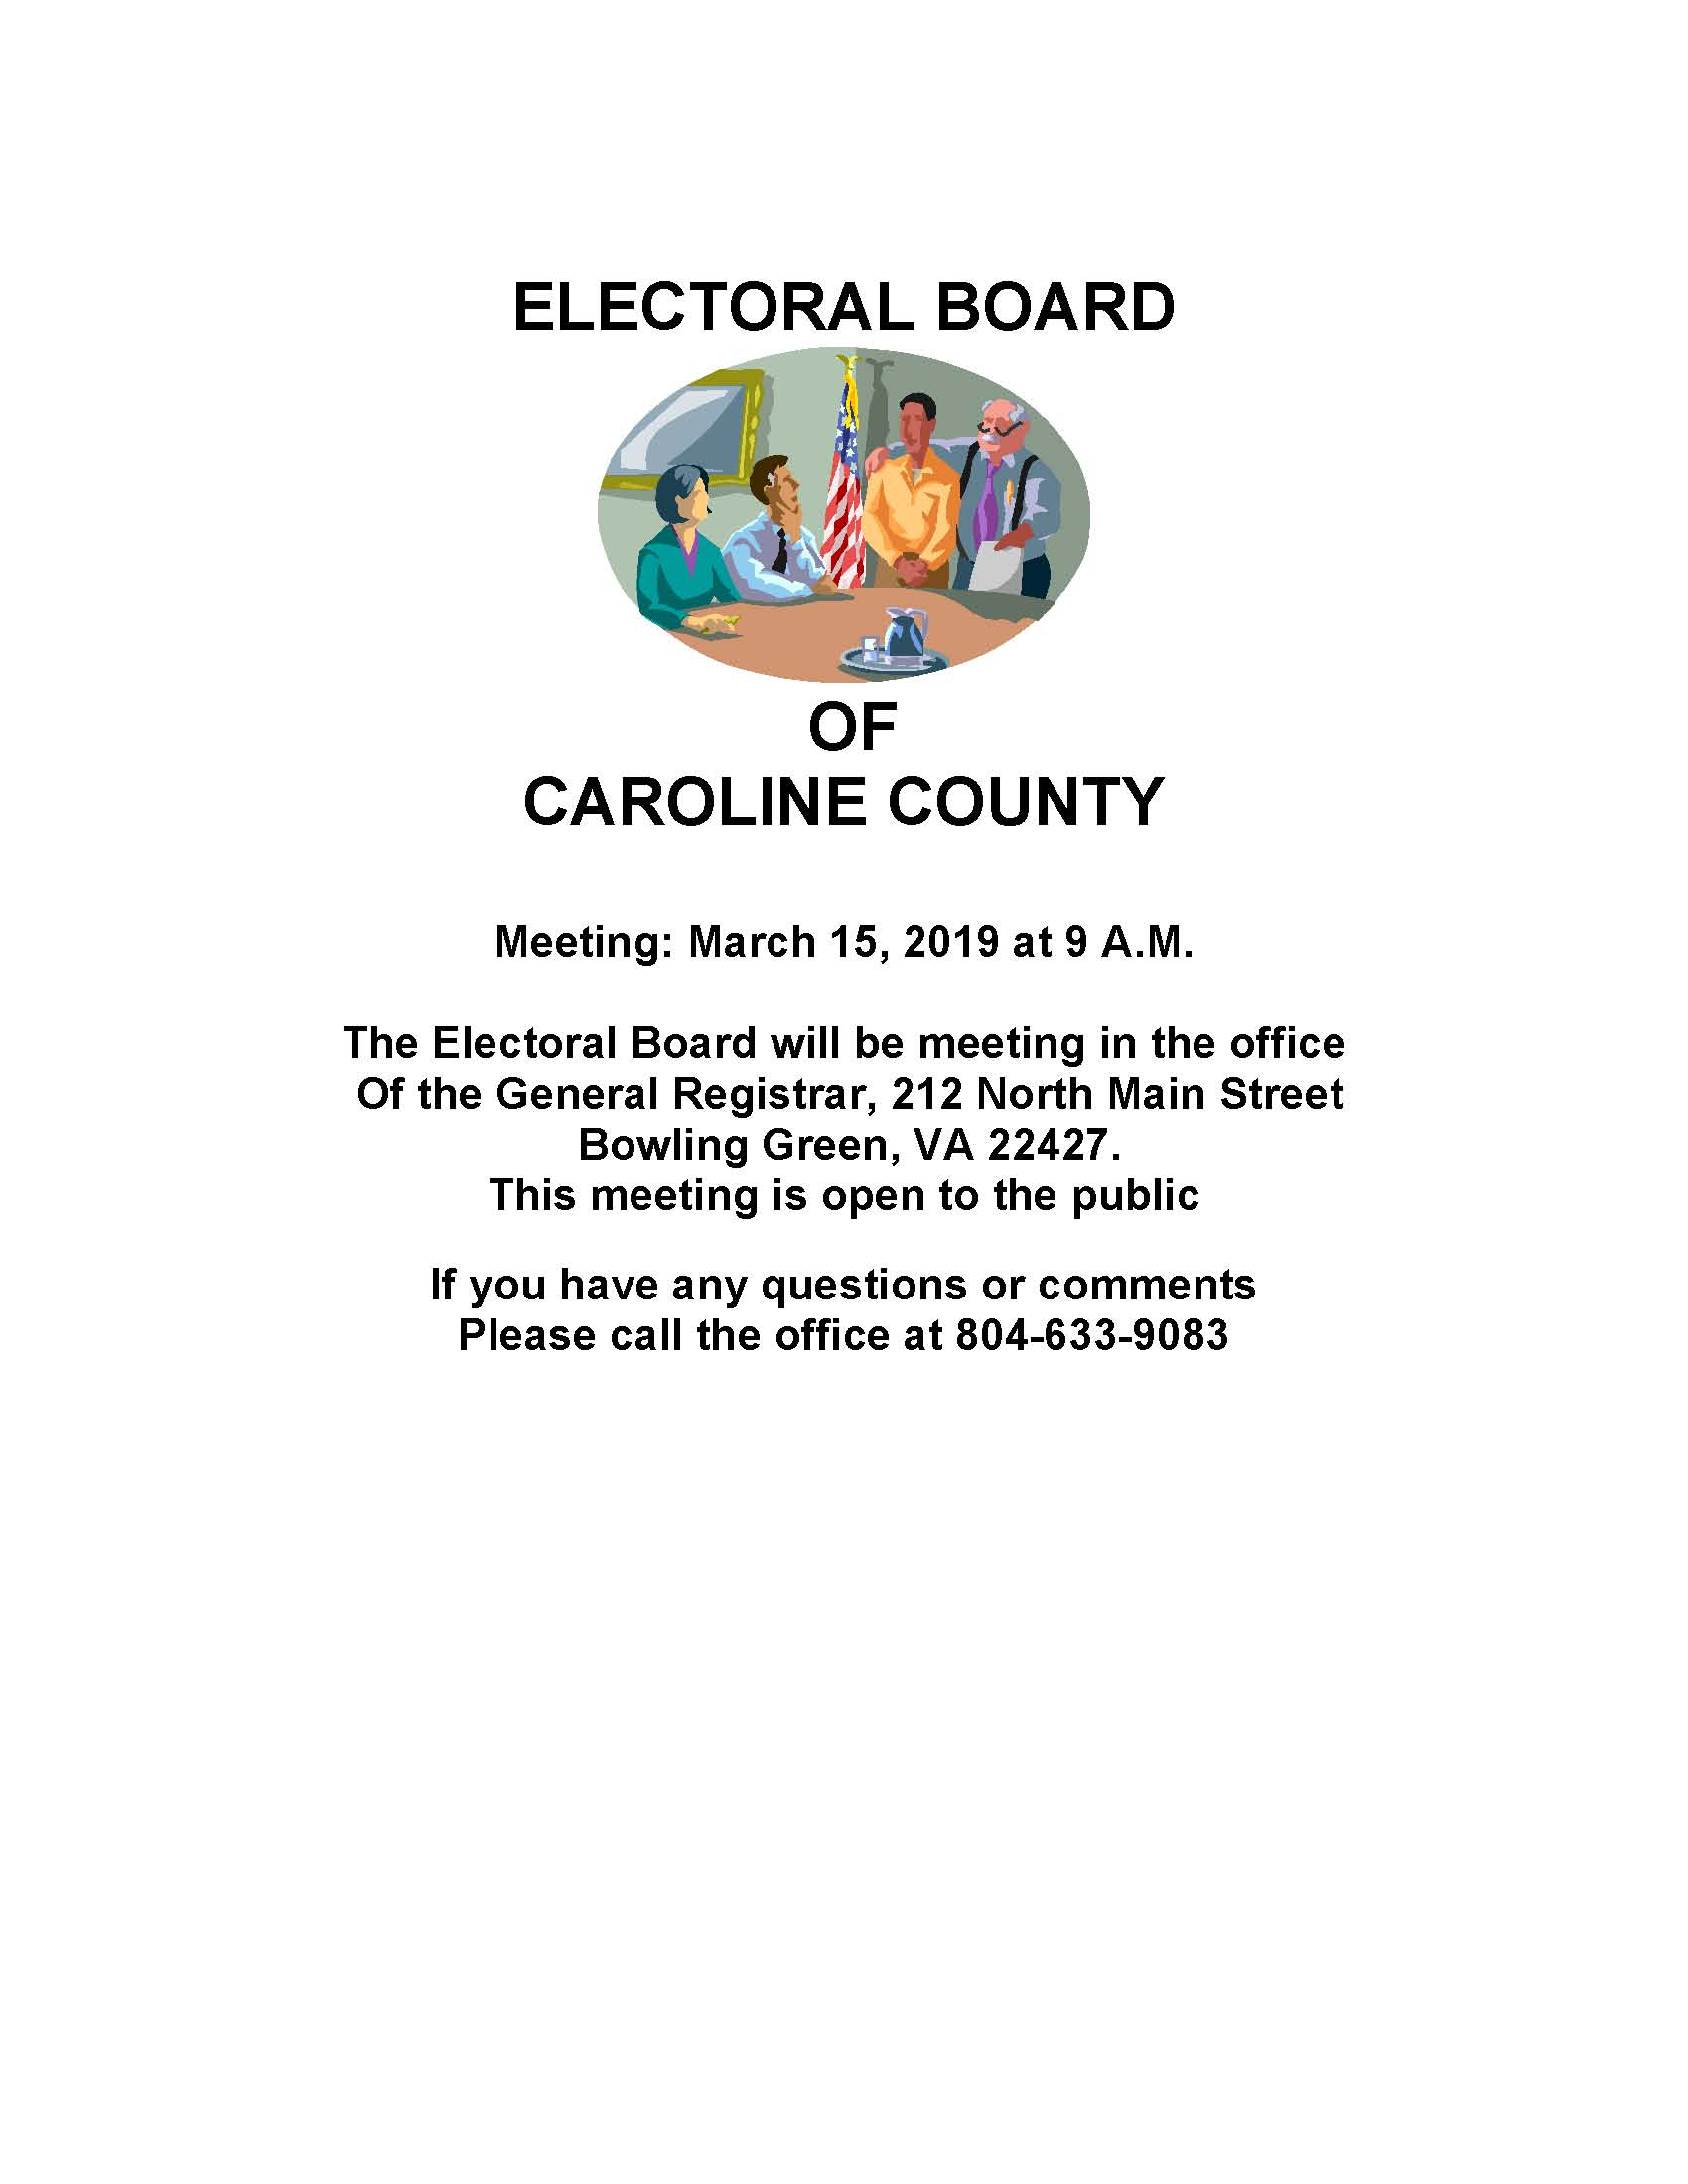 Electoral Board Meeting March 15, 2019